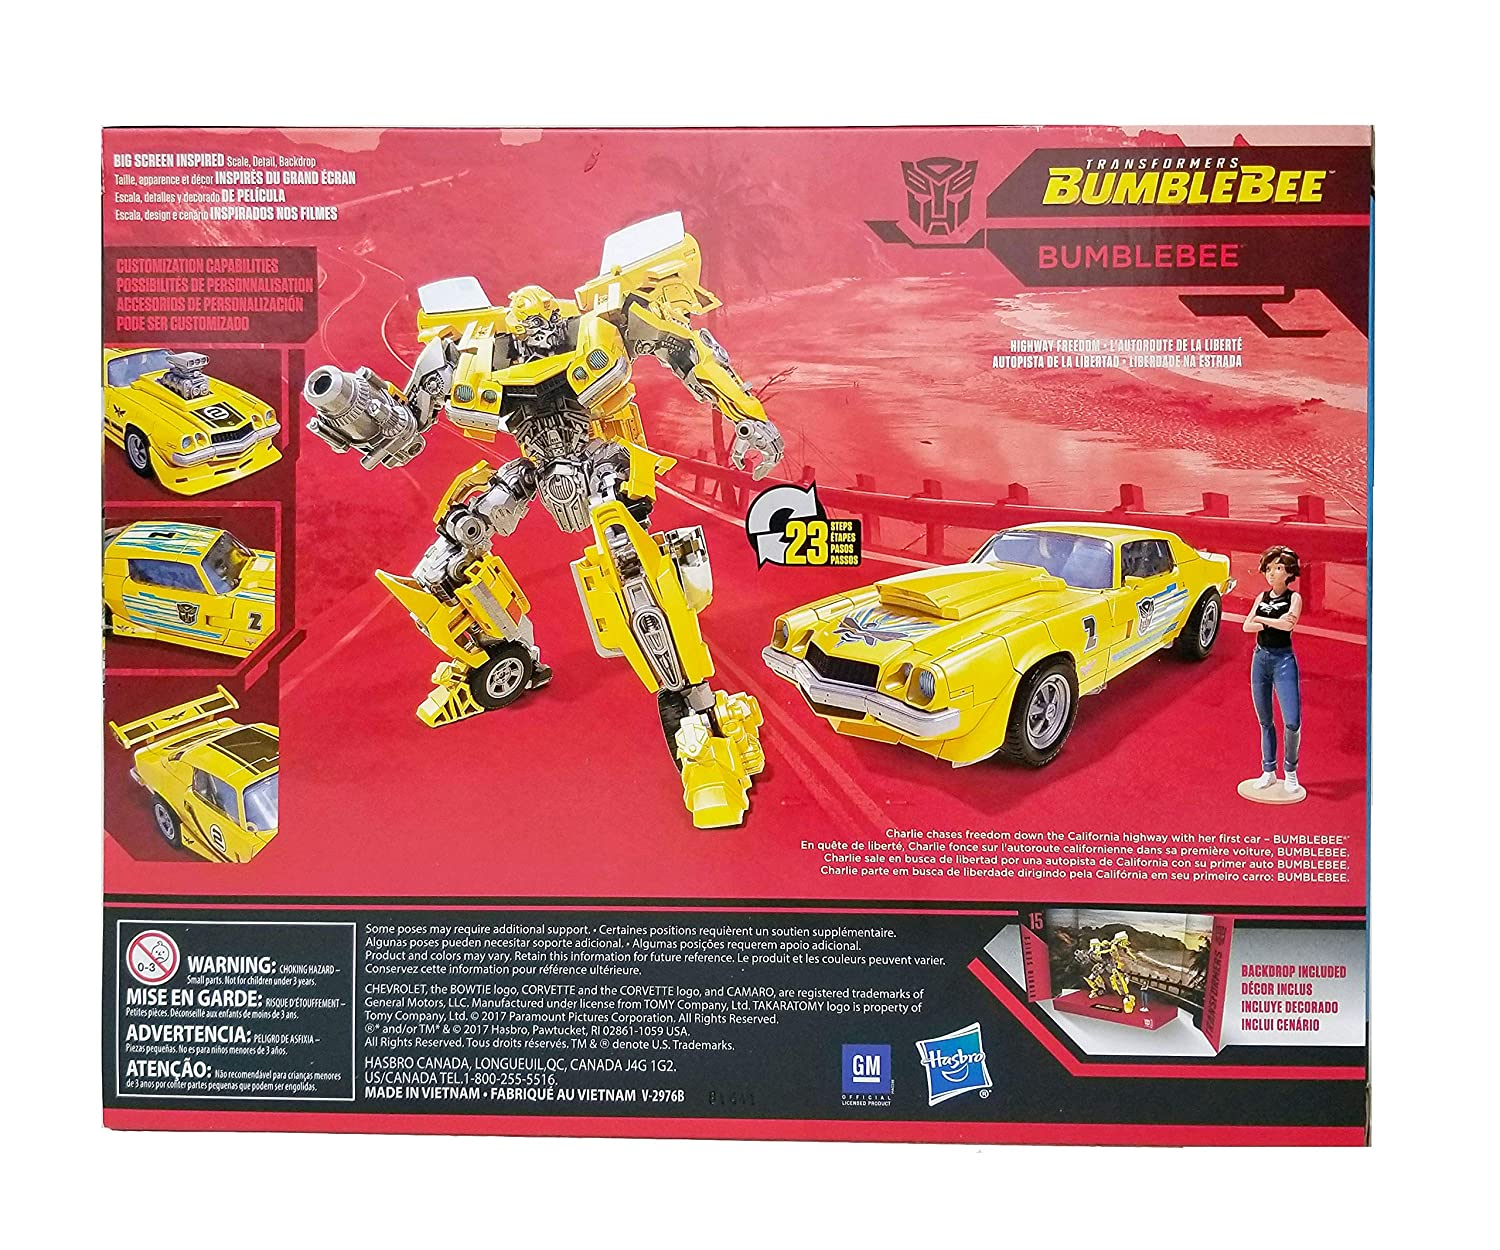 Amazon.com: Transformers Studio Series Deluxe Class Rebekahs Garage Bumblebee with Charlie Exclusive Figure: Toys & Games